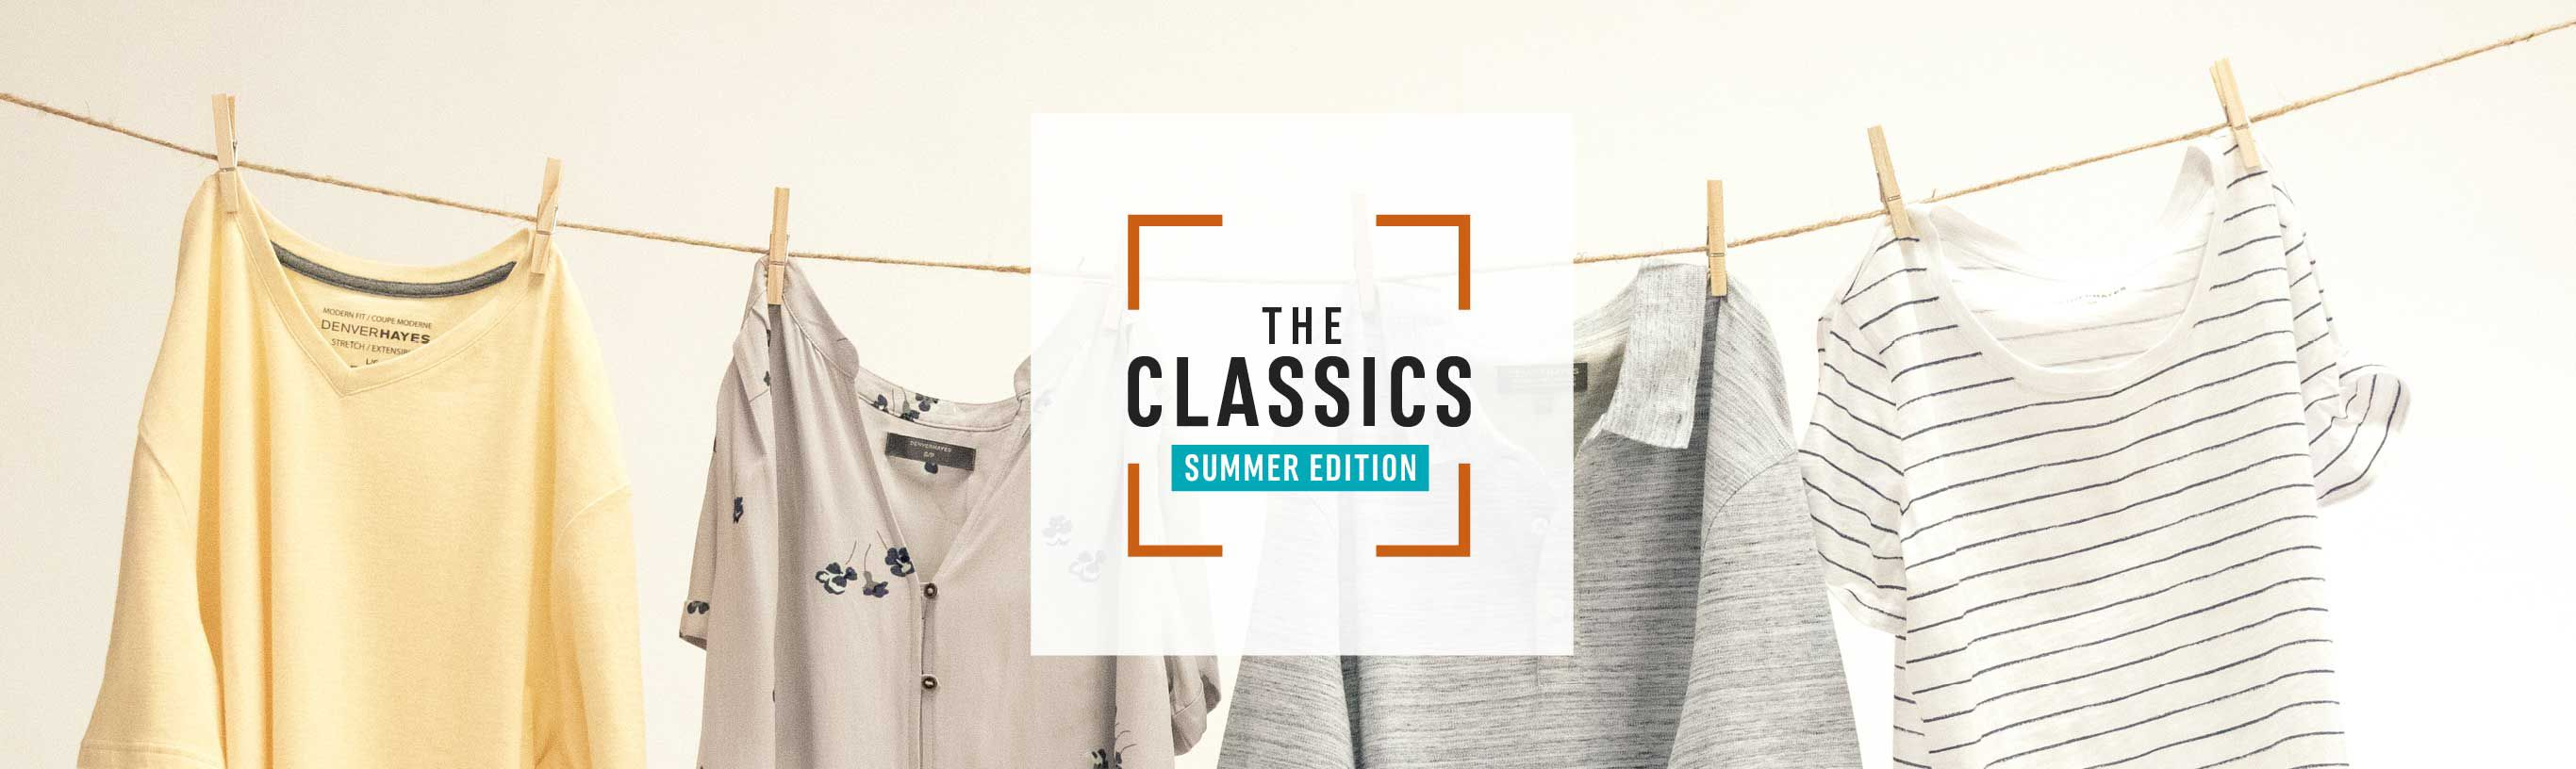 The Classics - Summer Edition